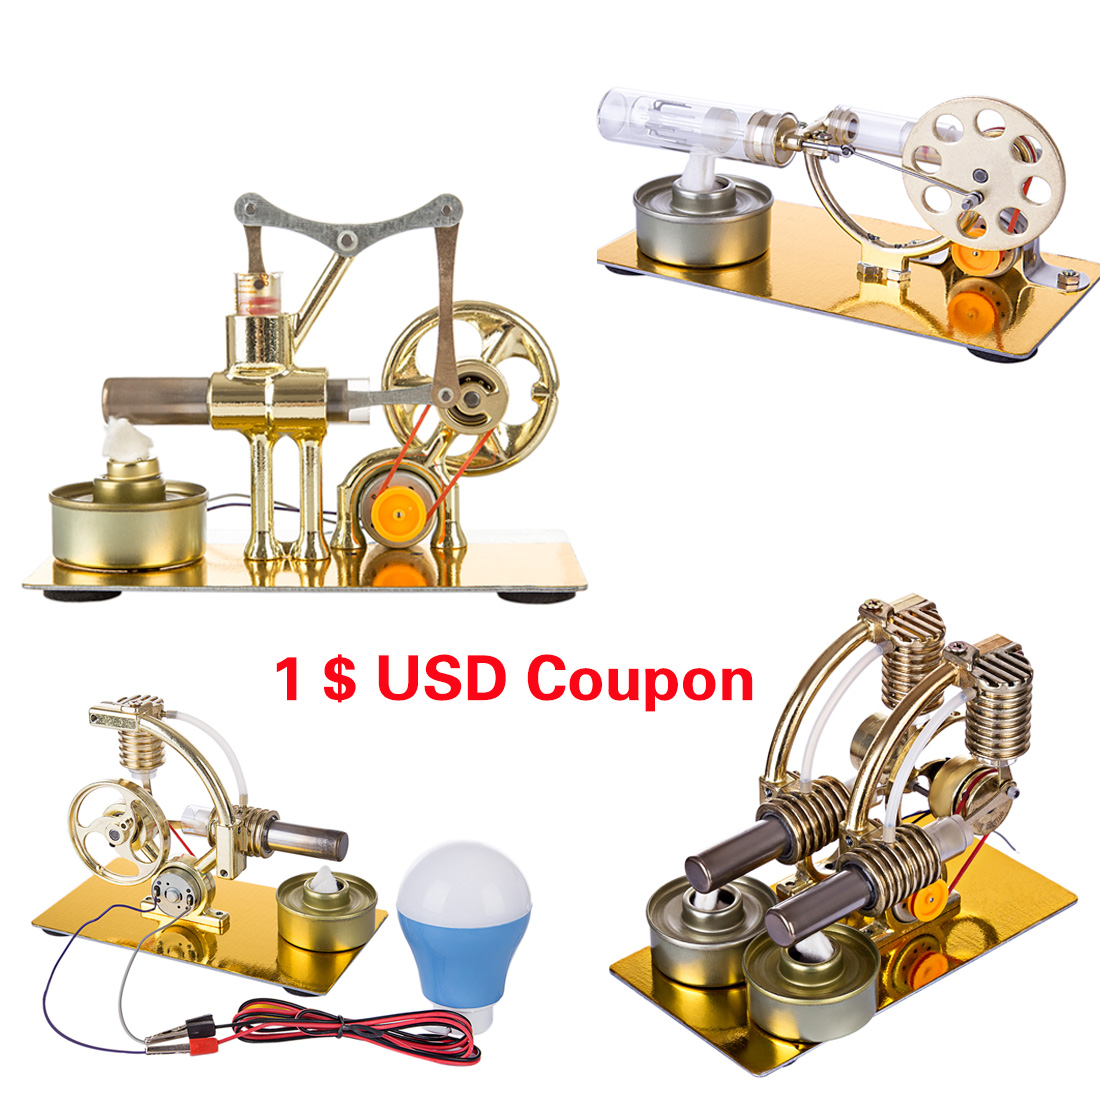 Surwish 2019 New Teenager Physics Lab Single Cylinder Balance Stirling Engine Model Science Experiment Metal Base Kit Education